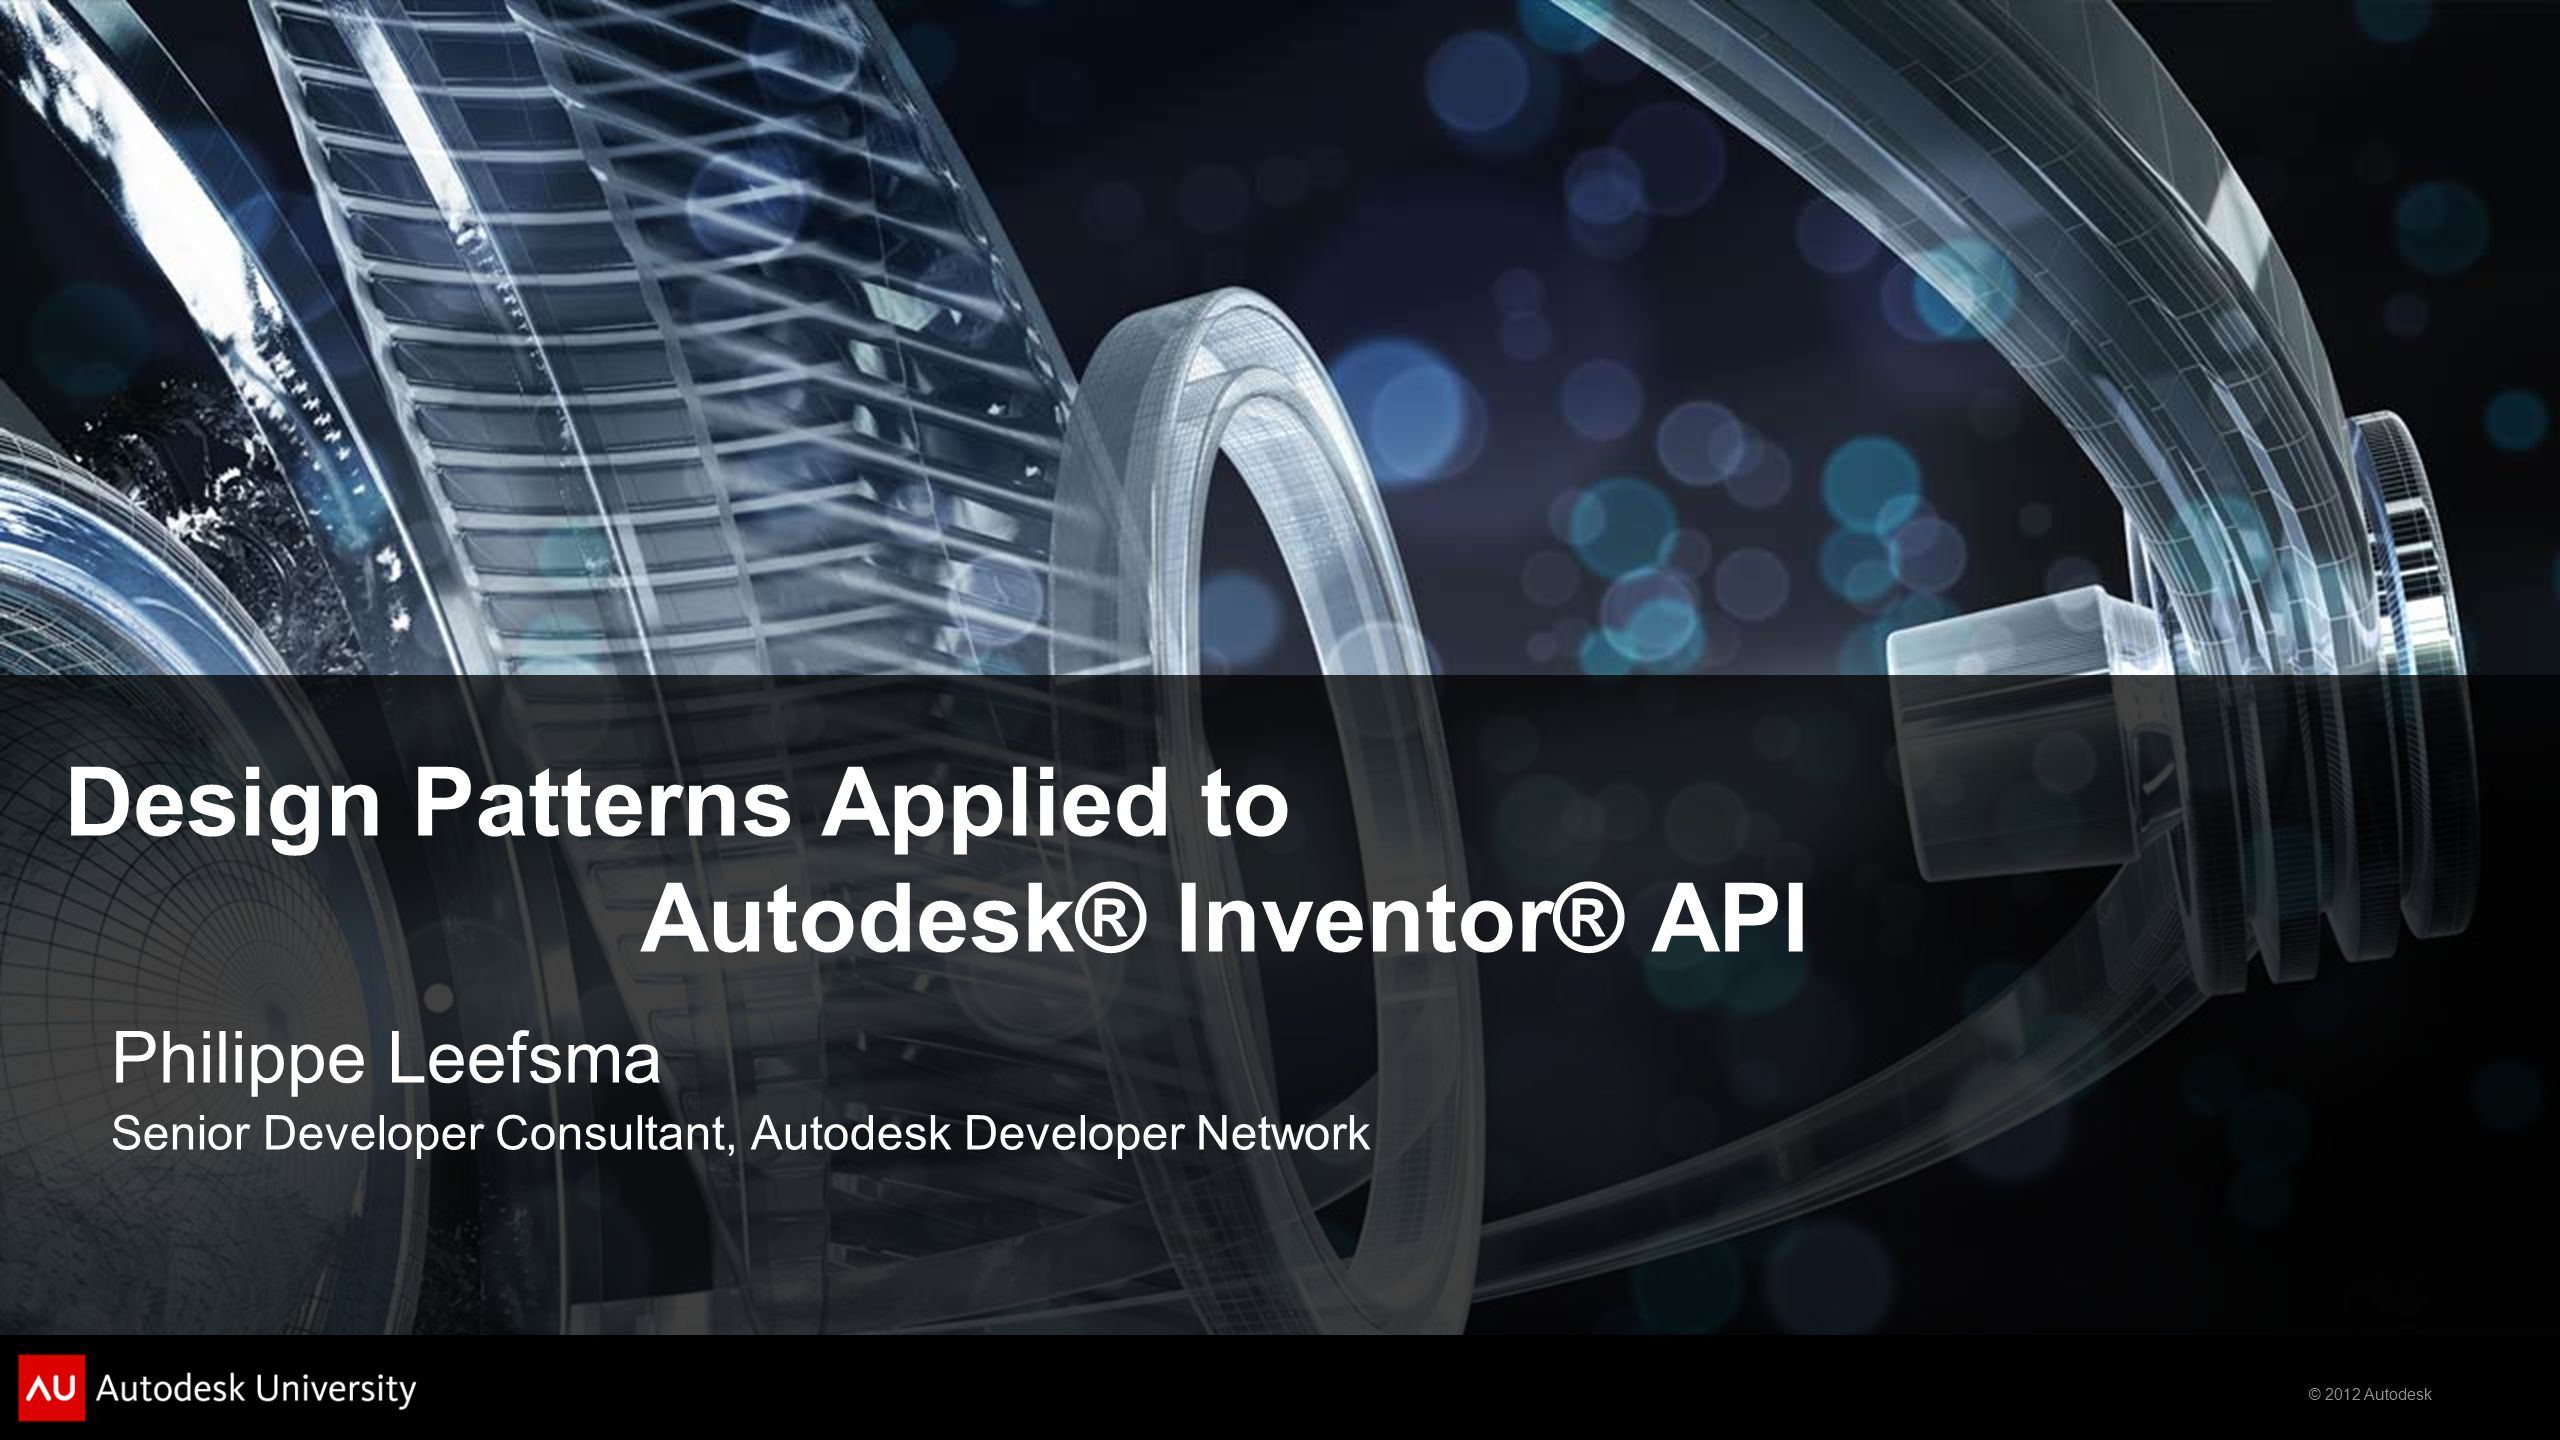 © 2012 Autodesk Resources for Inventor developers  Online Help, Developer s Guide and SDK Samples  Inventor Developer Center http://www.autodesk.com/developinventor  Webcasts and Trainings on Inventor Programming and News http://www.adskconsulting.com/adn/cs/api_course_sched.php  Discussion Group http://discussion.autodesk.com > Inventor  API Training Classes http://www.autodesk.com/apitraining  ADN, The Autodesk Developer Network http://www.autodesk.com/joinadn  Manufacturing DevBlog http://adndevblog.typepad.com/manufacturing